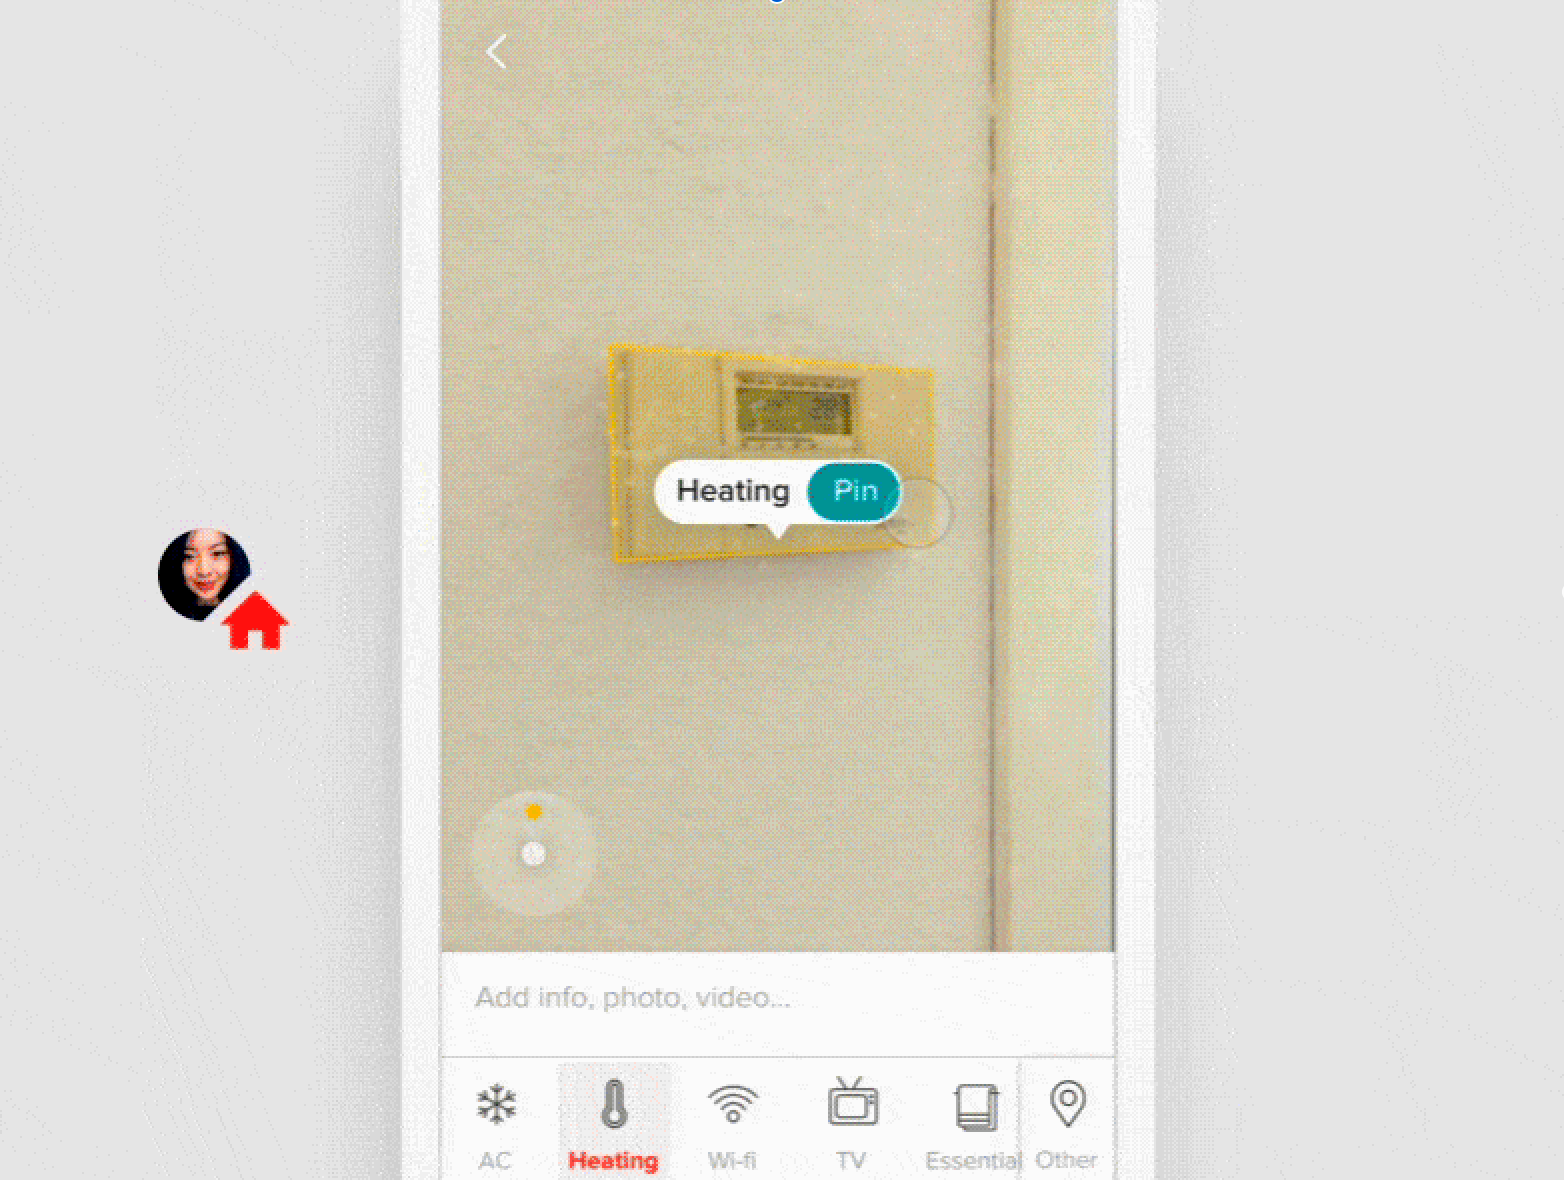 Building An Ar House Manual For Your Airbnb With Arkit Placenote Sdk